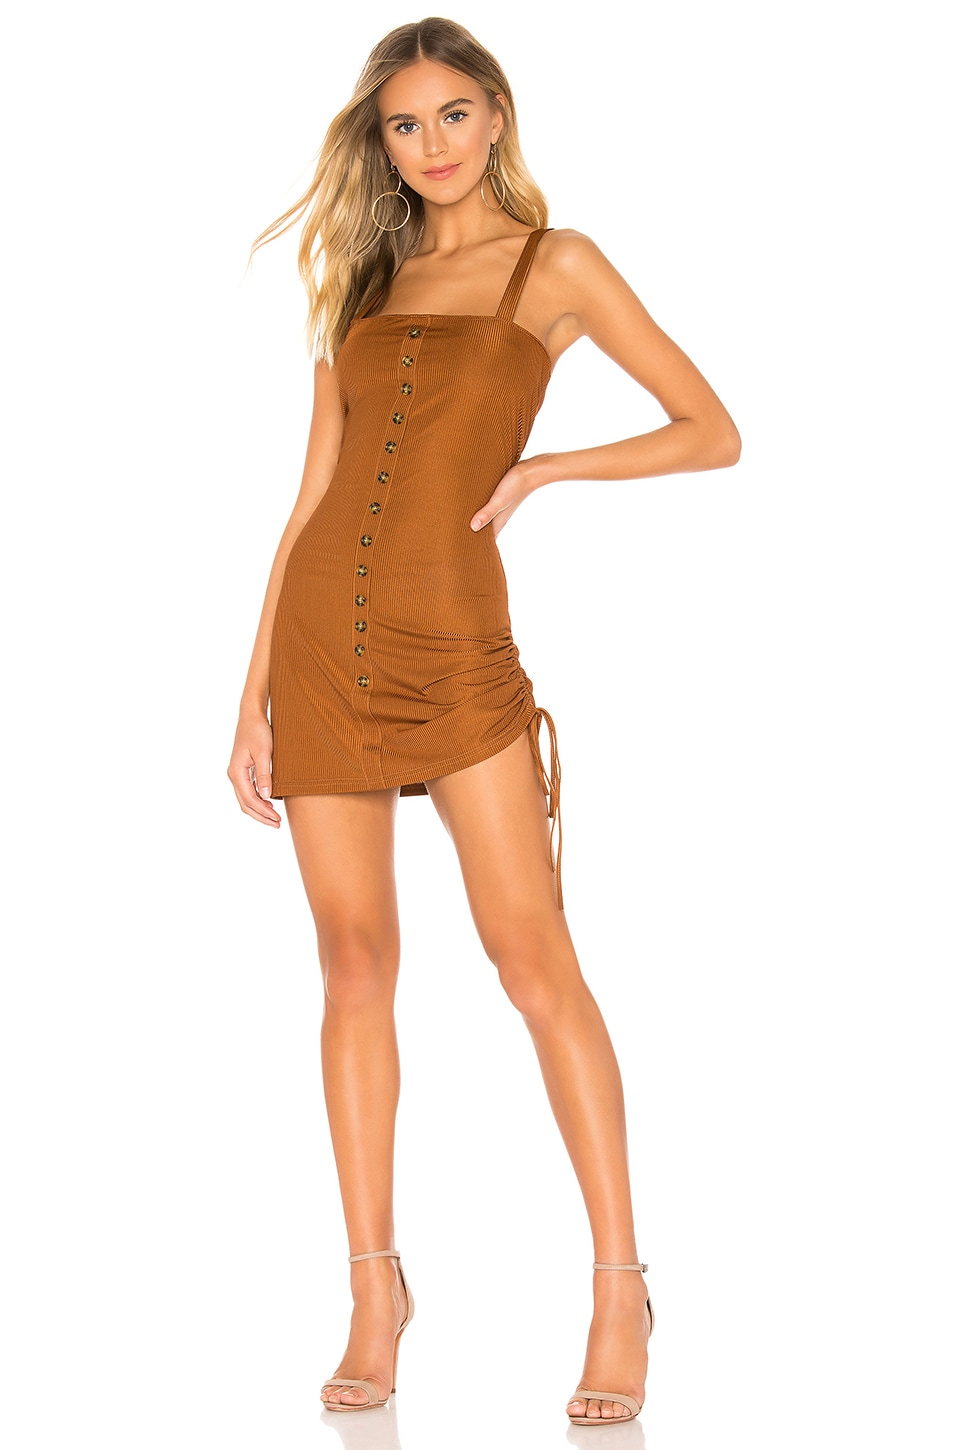 The East Order Kaisey Mini Dress in Cocoa